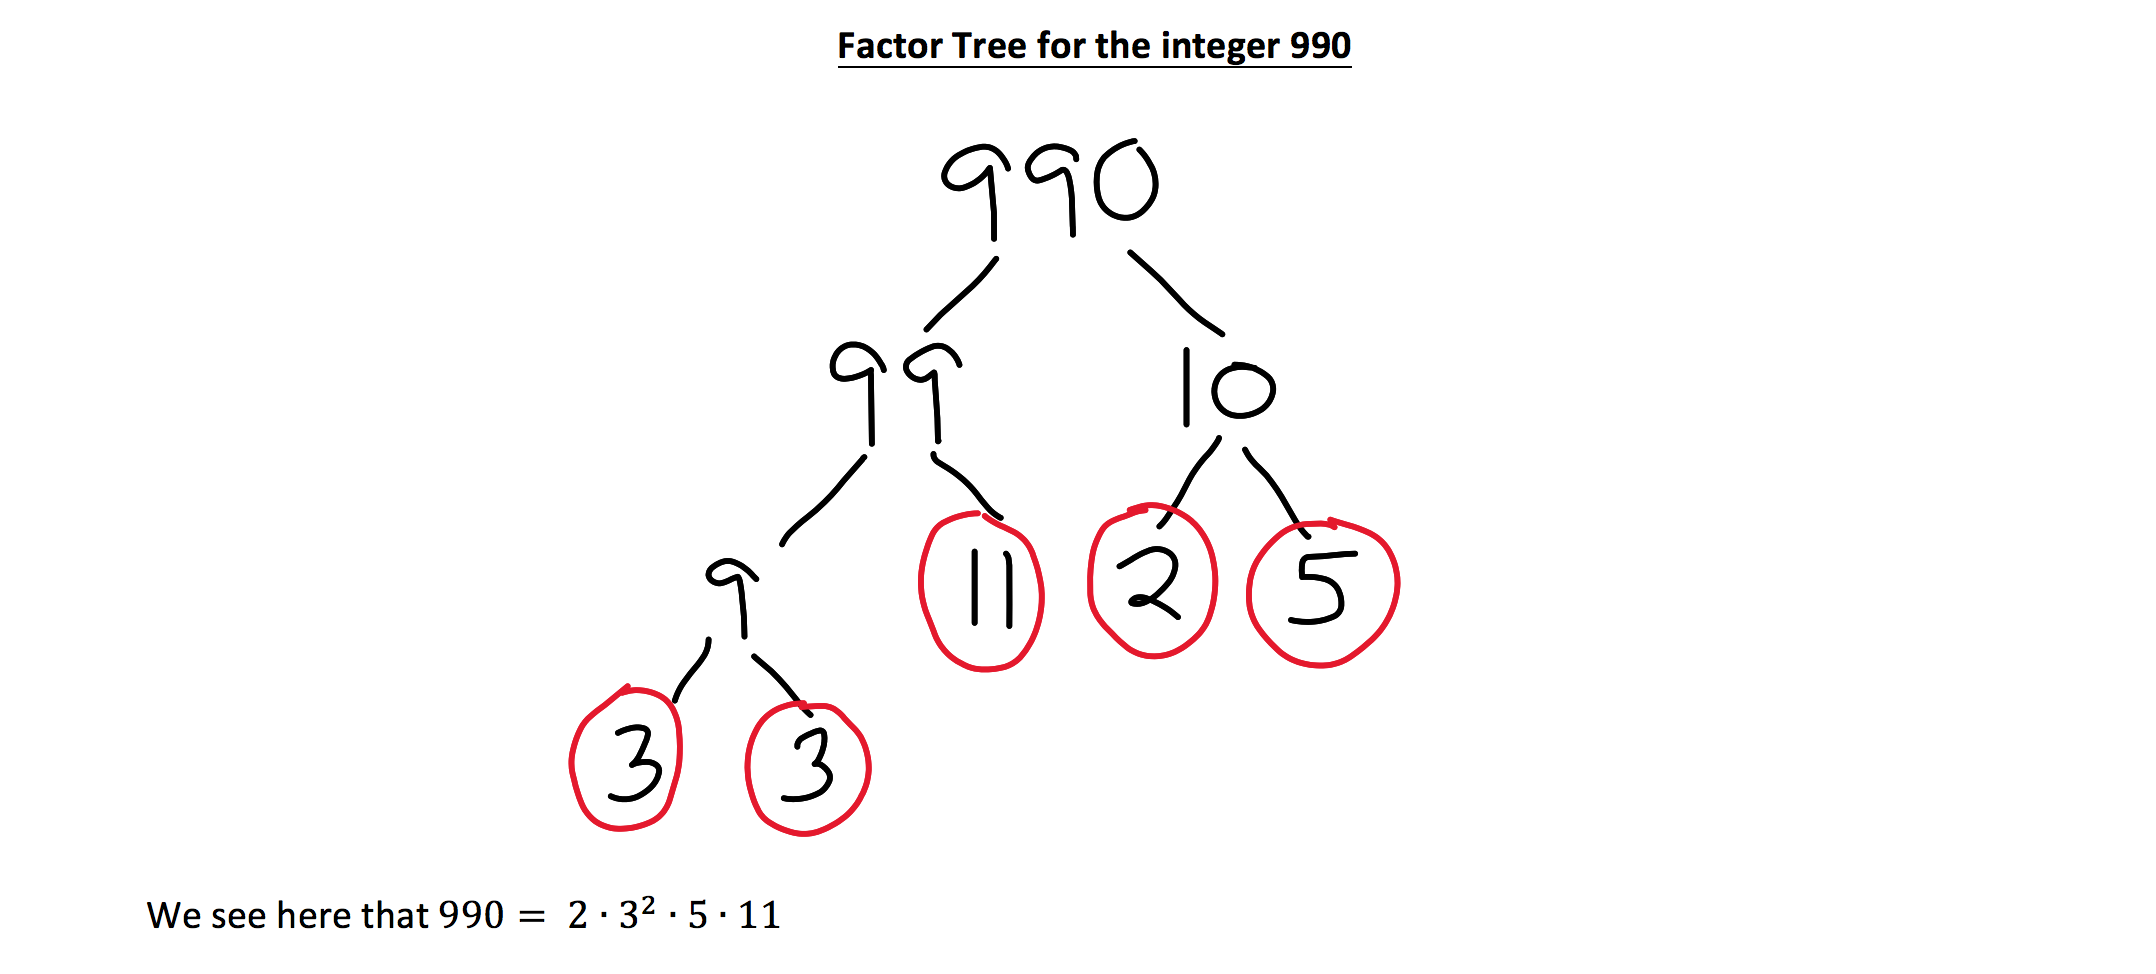 The Power Of The Prime Factorization For The Gmat Quantitative Section The type the number in the input box below to find the prime factors of that number. the power of the prime factorization